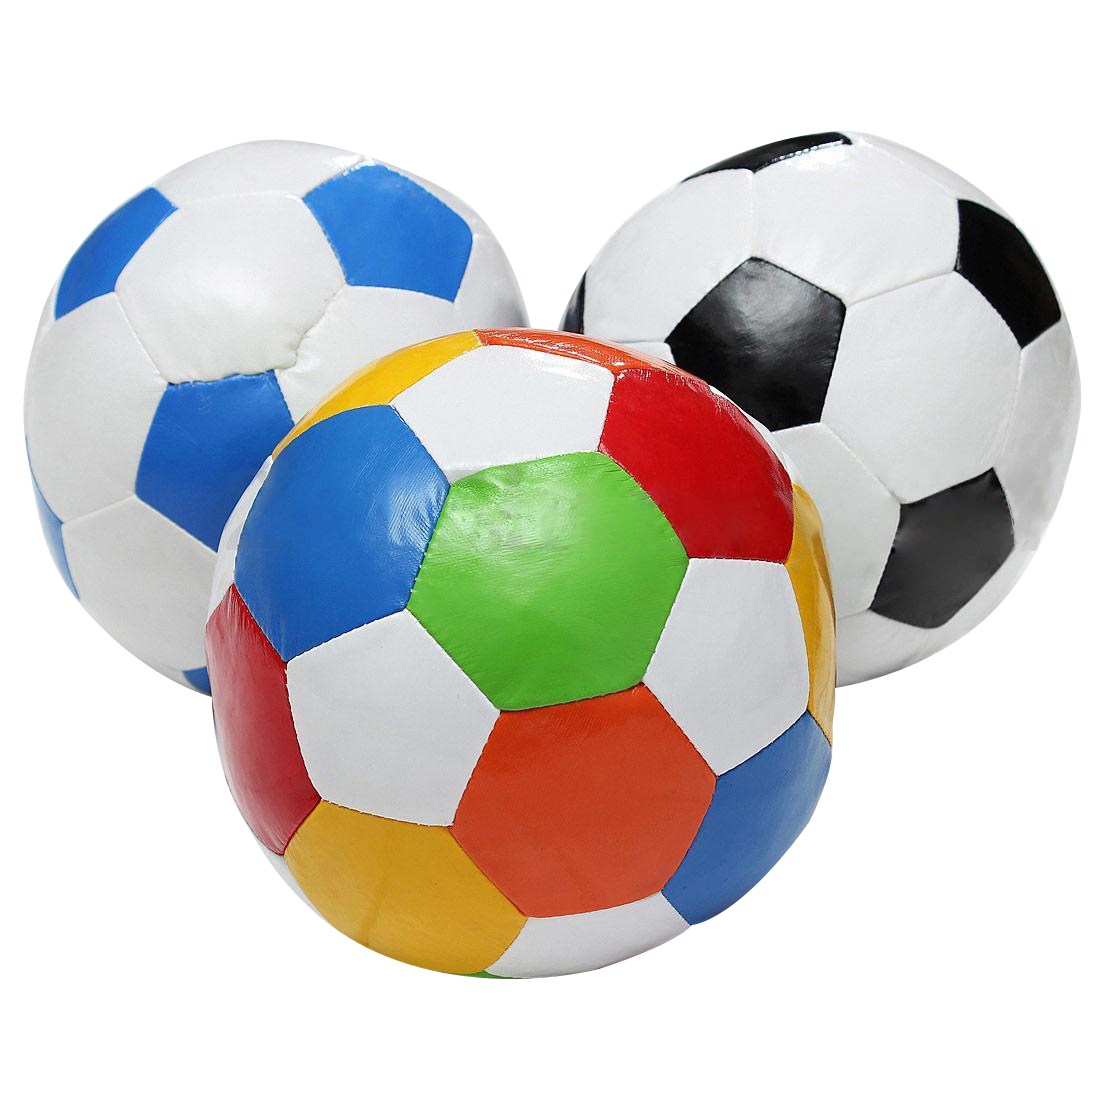 HOT SALE 1PCS 14.4cm Soft Indoor PVC Surface Football Soccer Play Ball Toy for boys random color image